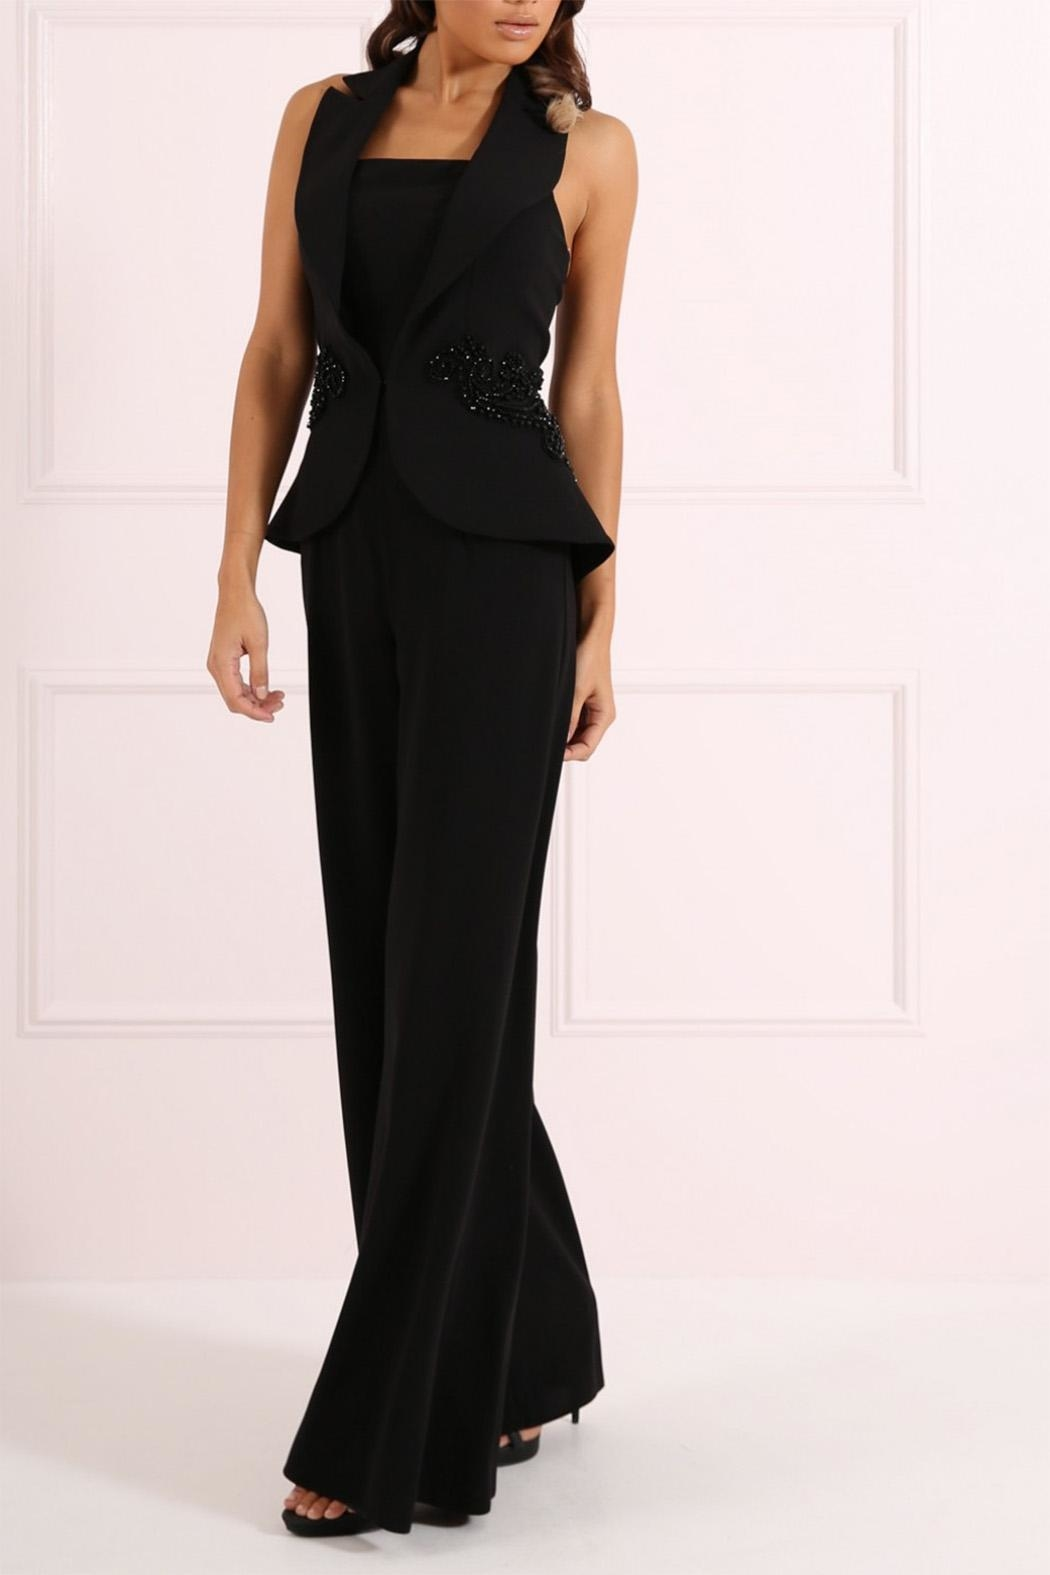 9b98e7129d04 Forever Unique Tuxedo Style Jumpsuit from Toronto by NakedBodyz ...